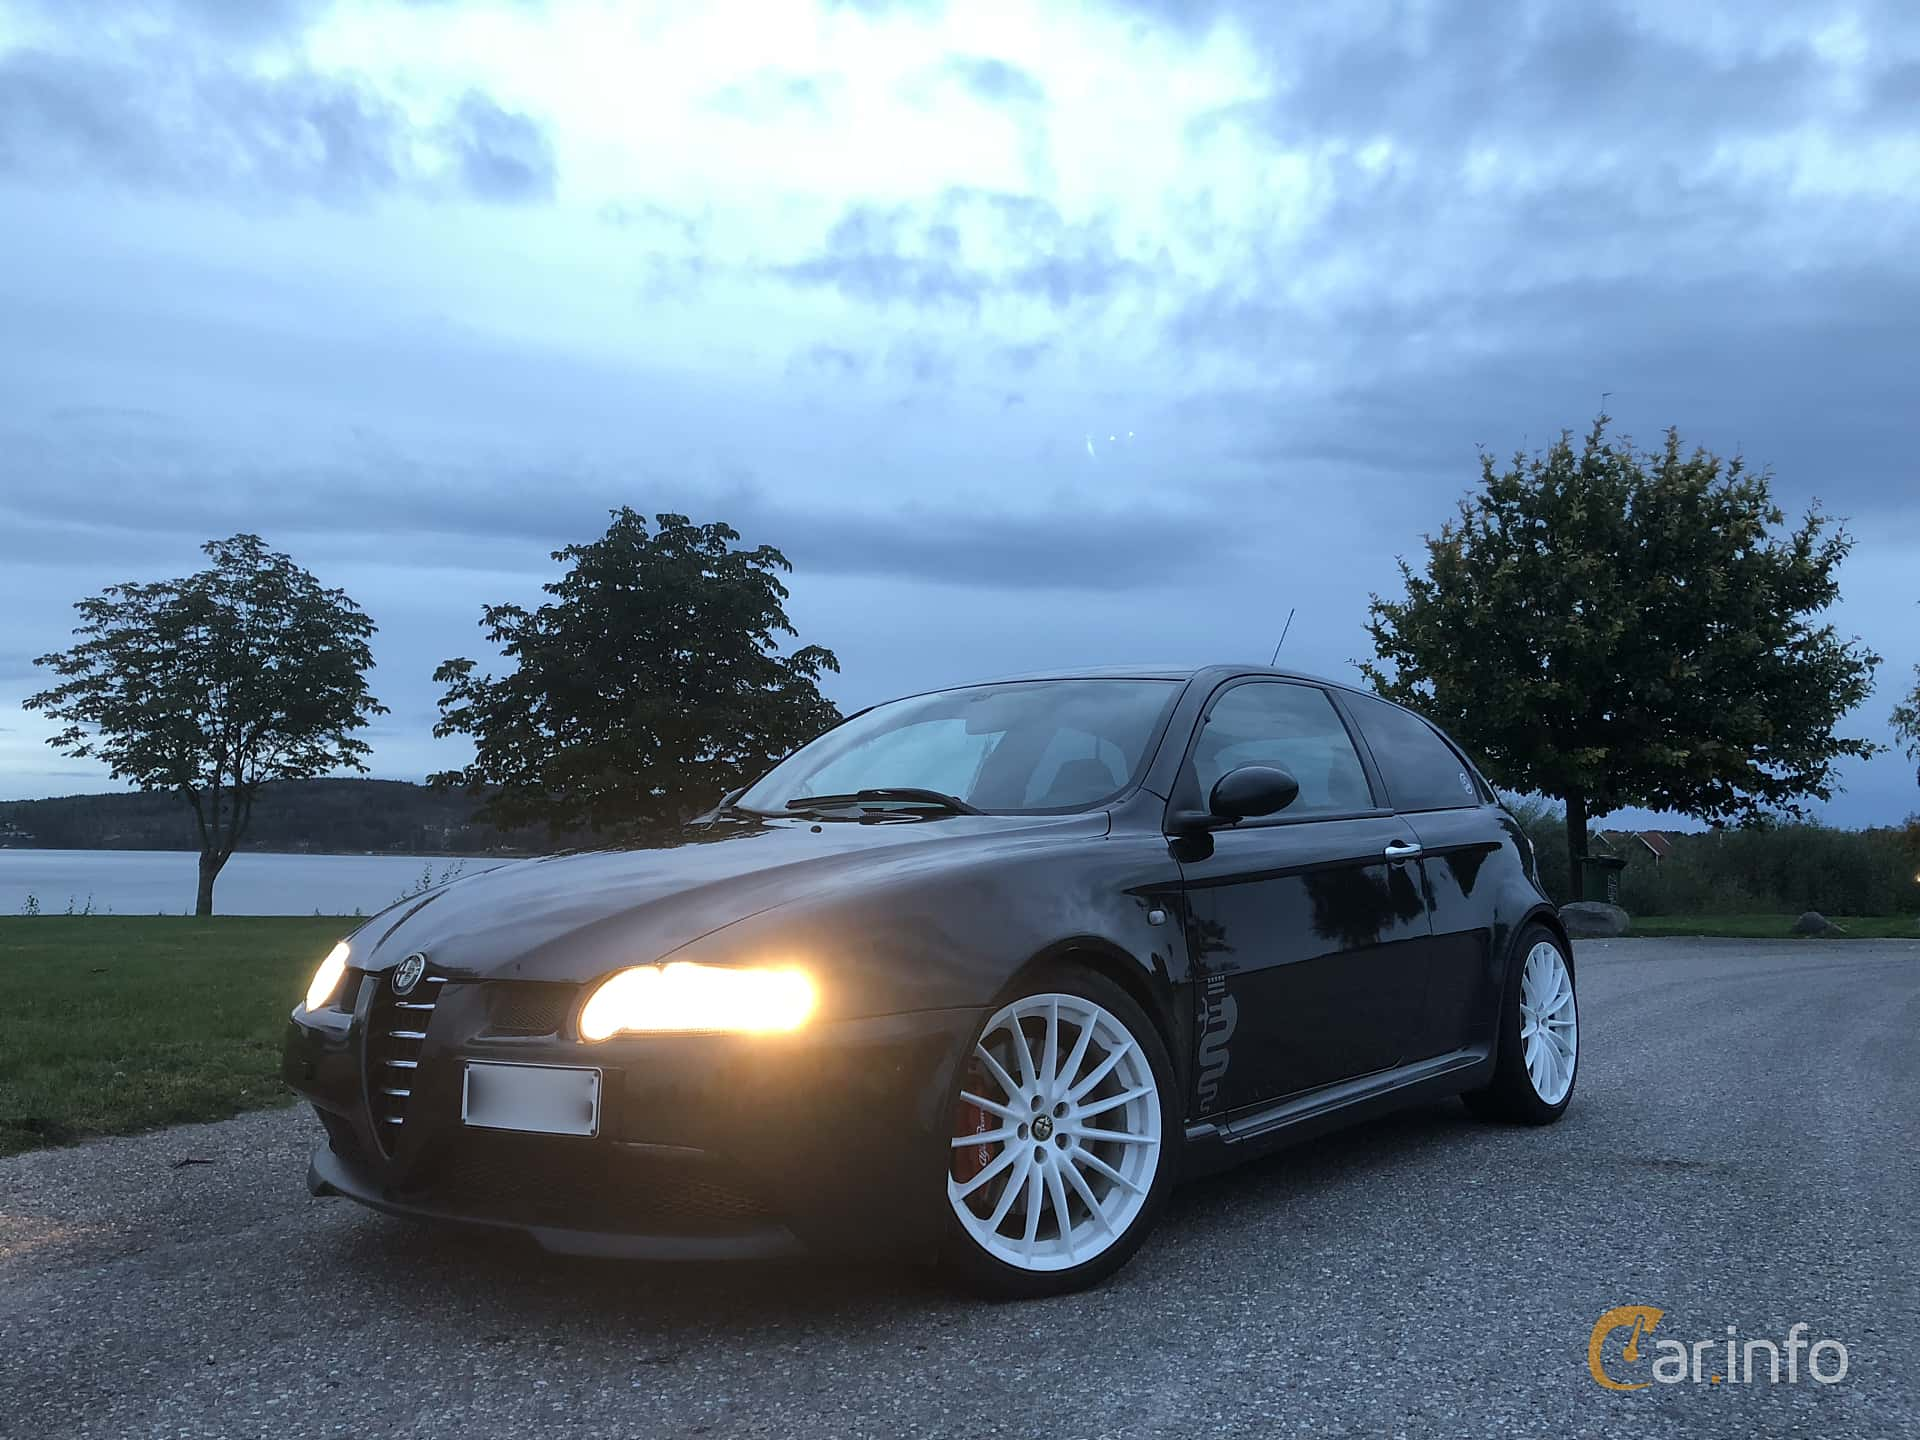 Front/Side  of Alfa Romeo 147 GTA 3.2 V6 Manual, 250ps, 2005